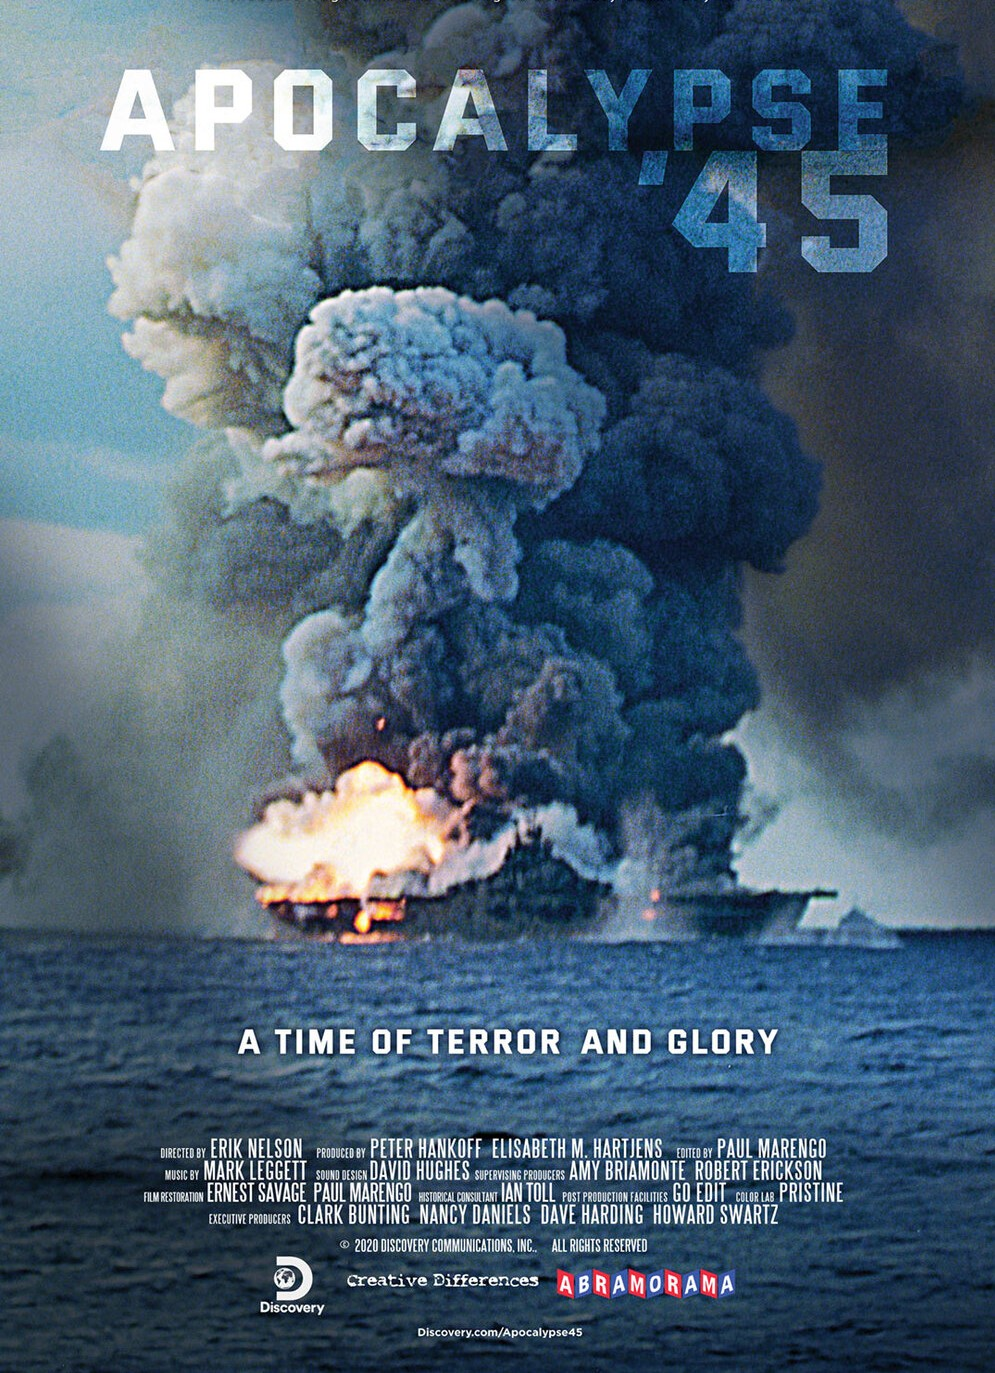 Apocalypse '45 hd on soap2day